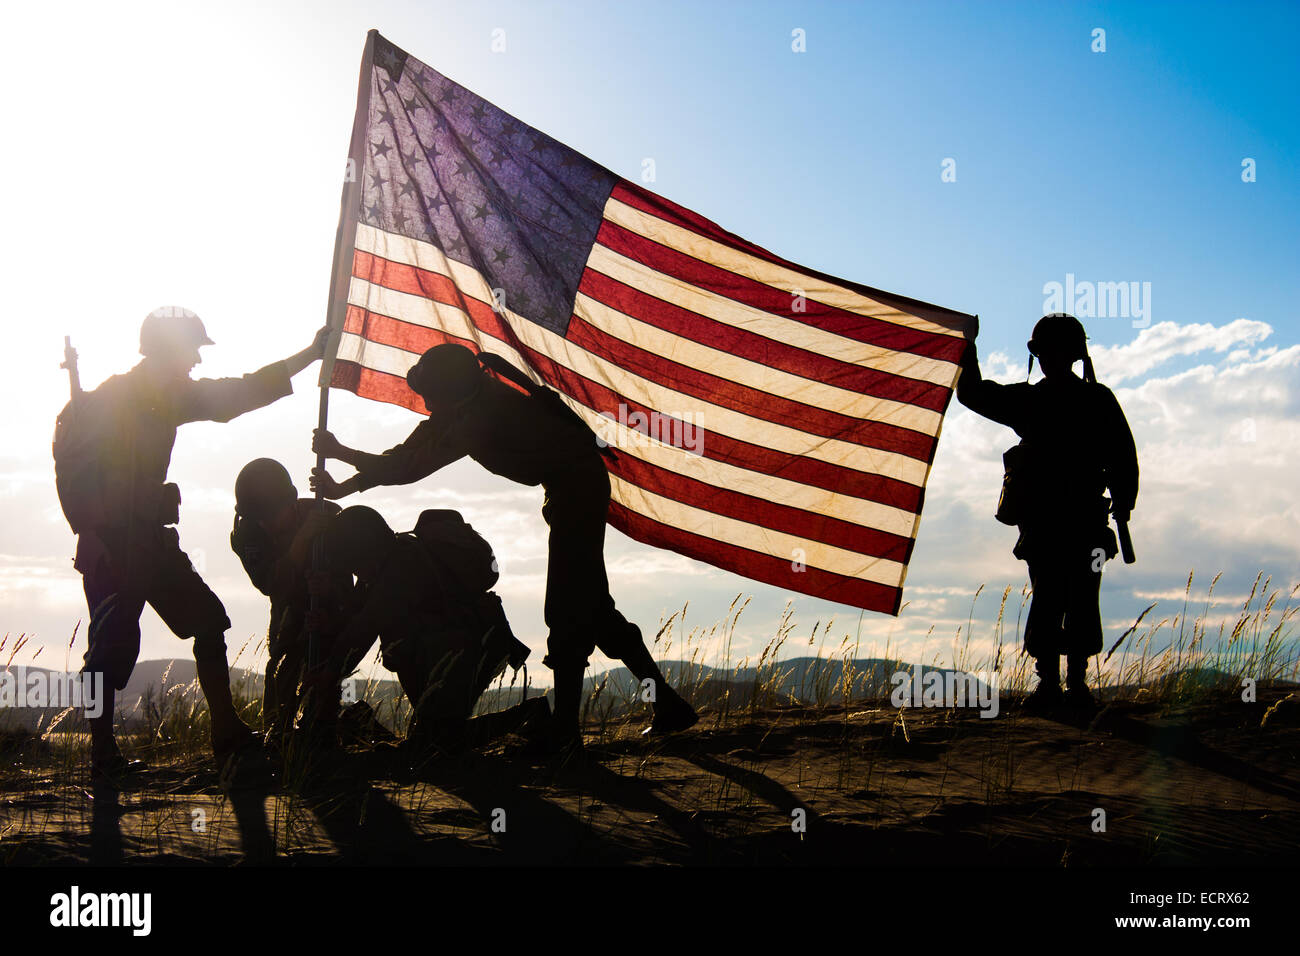 Soldiers in WWII uniforms recreating the raising of the flag - Stock Image